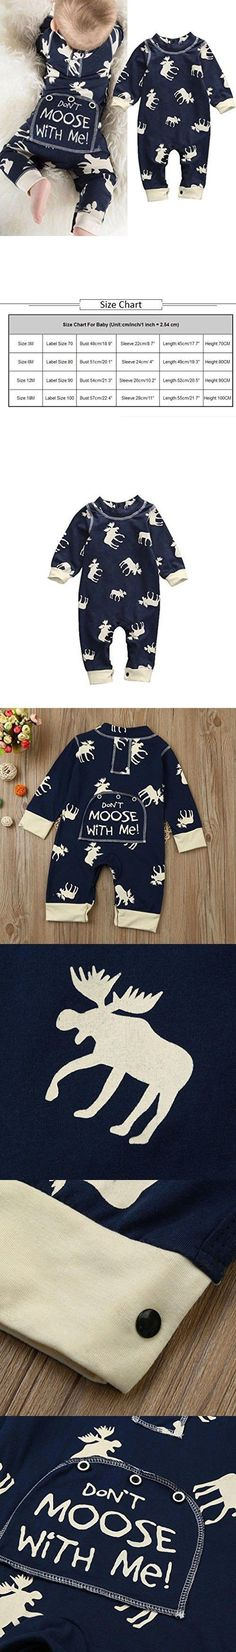 DON'T MOOSE WITH ME ROMPER -  Toddler Infant Baby Boy Girl Long Sleeve Deer Romper Outfits Set Jumpsuit Bodysuit Clothes (12-18 months, Navy)    https://presentbaby.com